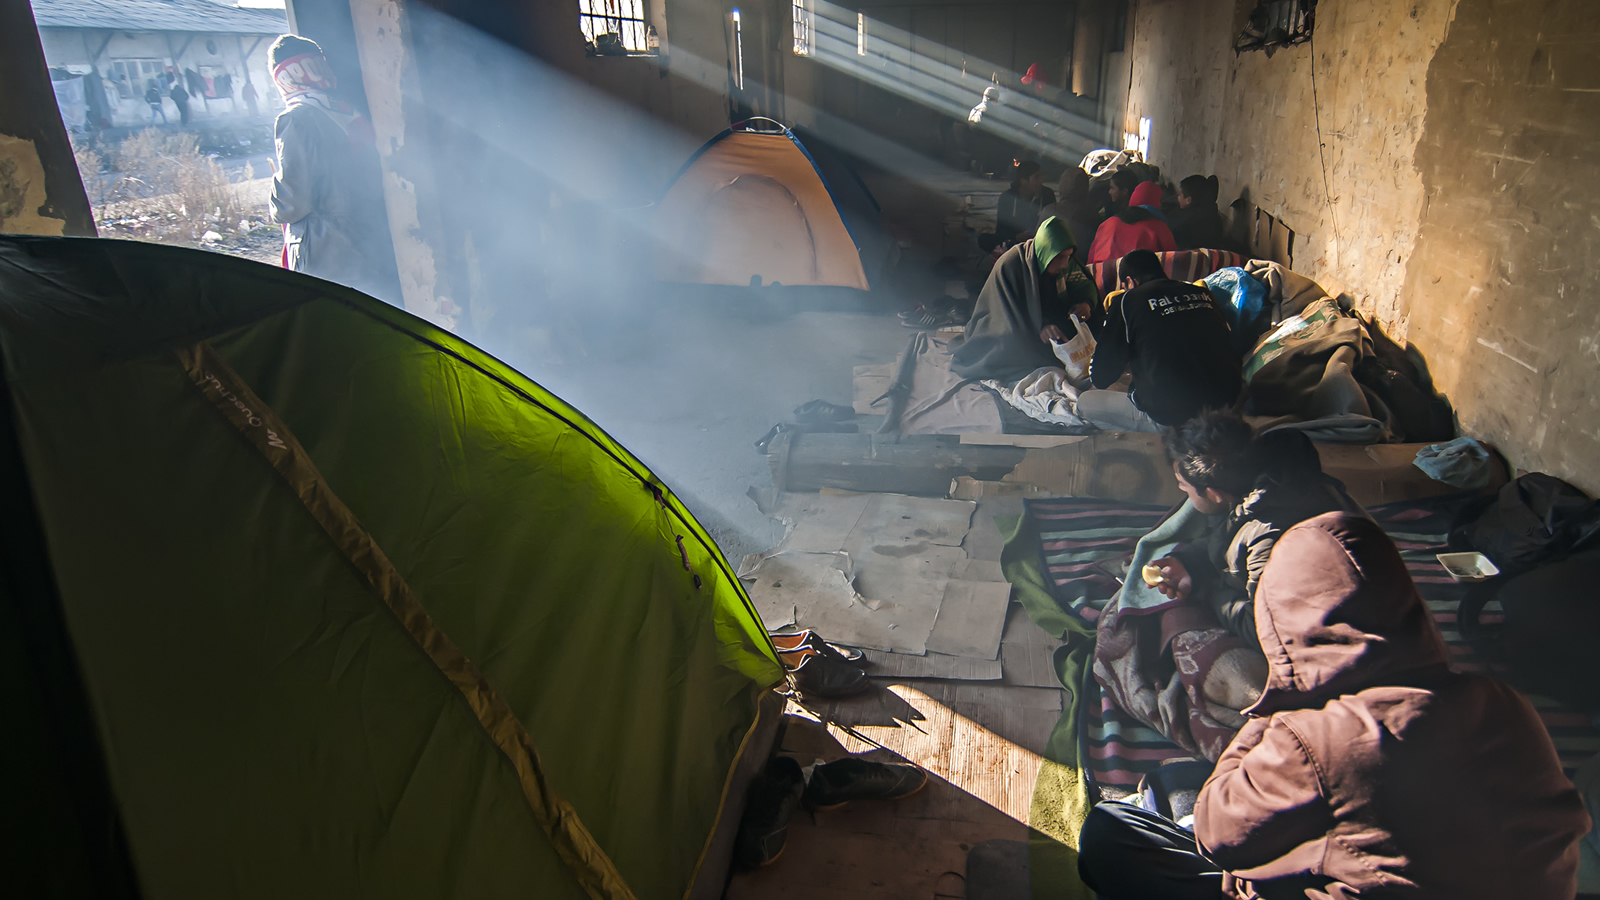 Refugees eating in tents and abandoned building in winter